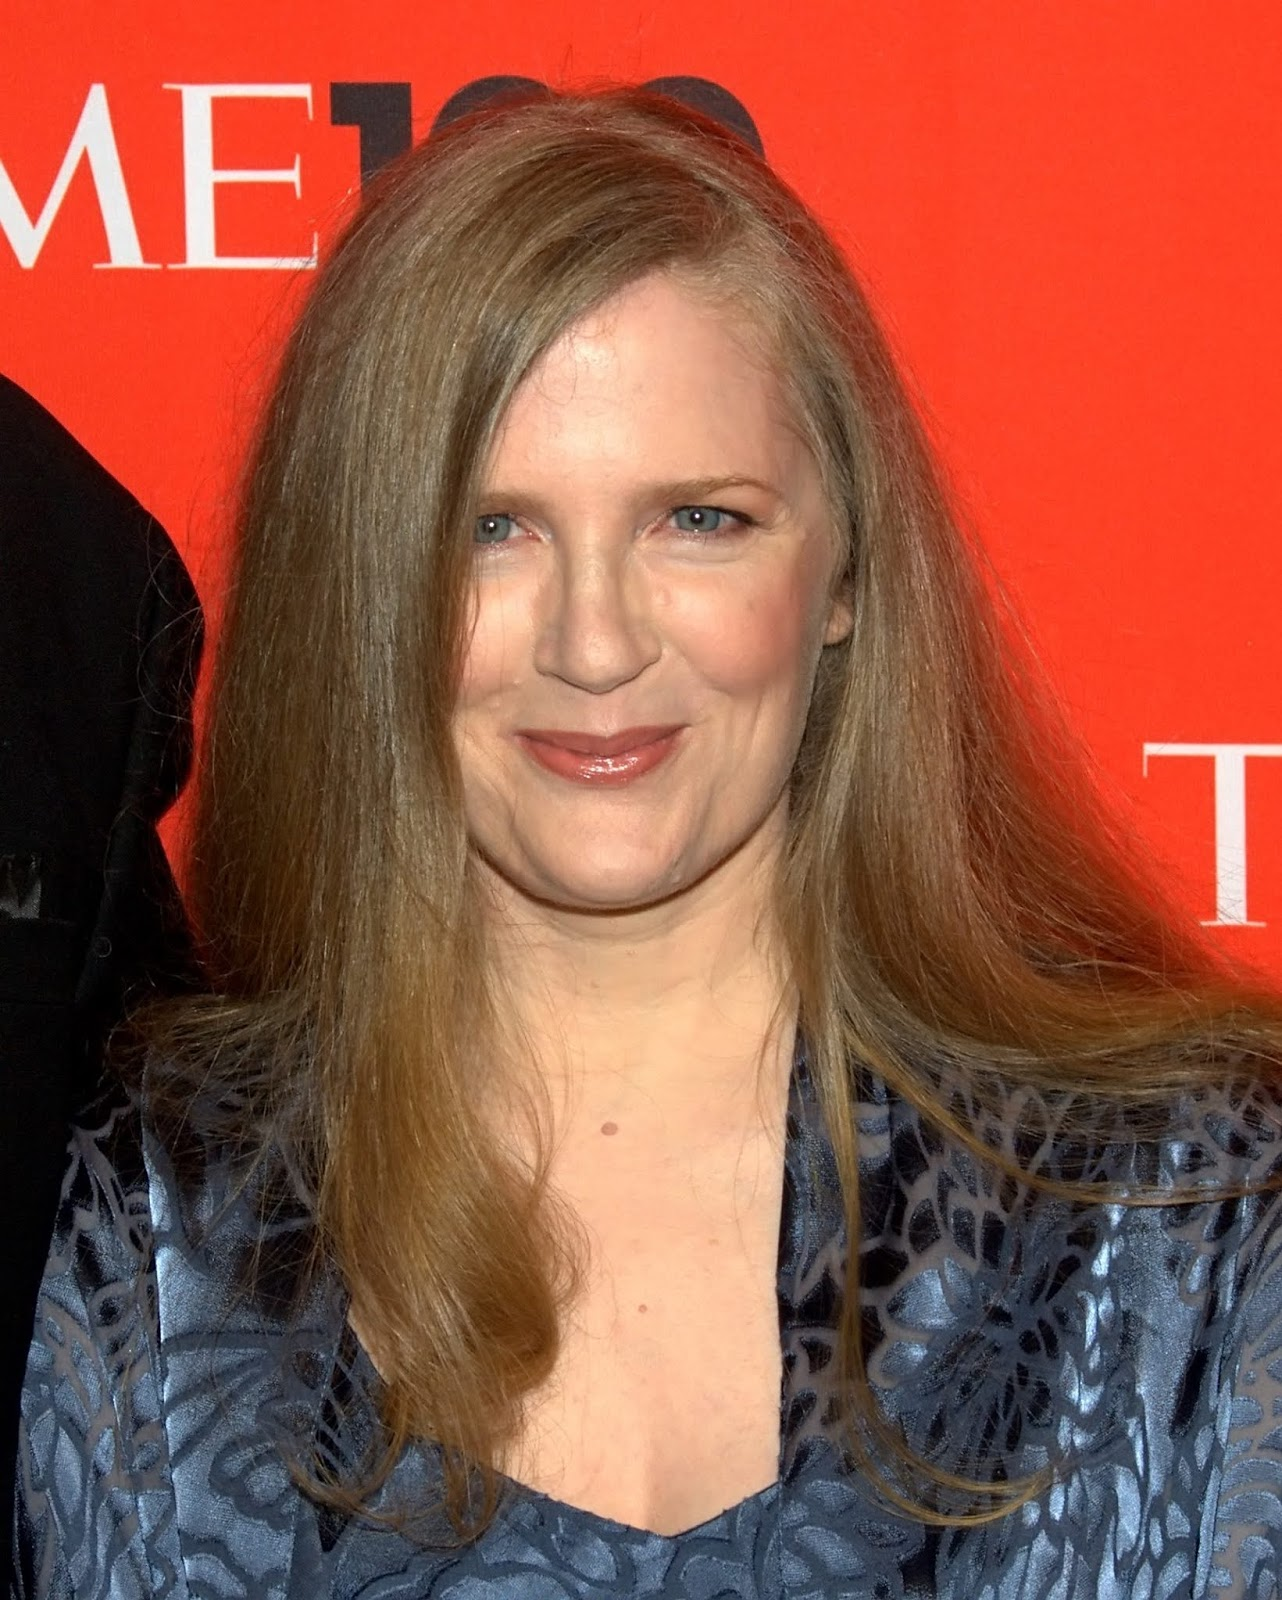 suzanne collins,suzanne,collins,suzanne collins (author),the hunger games suzanne collins,the hunger games by suzanne collins,suzanne collins reading the hunger games,hunger games,games,hunger,judy collins,suzanne (composition),mockingjay,katniss,reading,sanne,the hunger games,underland chronicles,books,book,review,the hunger games (book),en llamas,catching fire,catching,scholastic